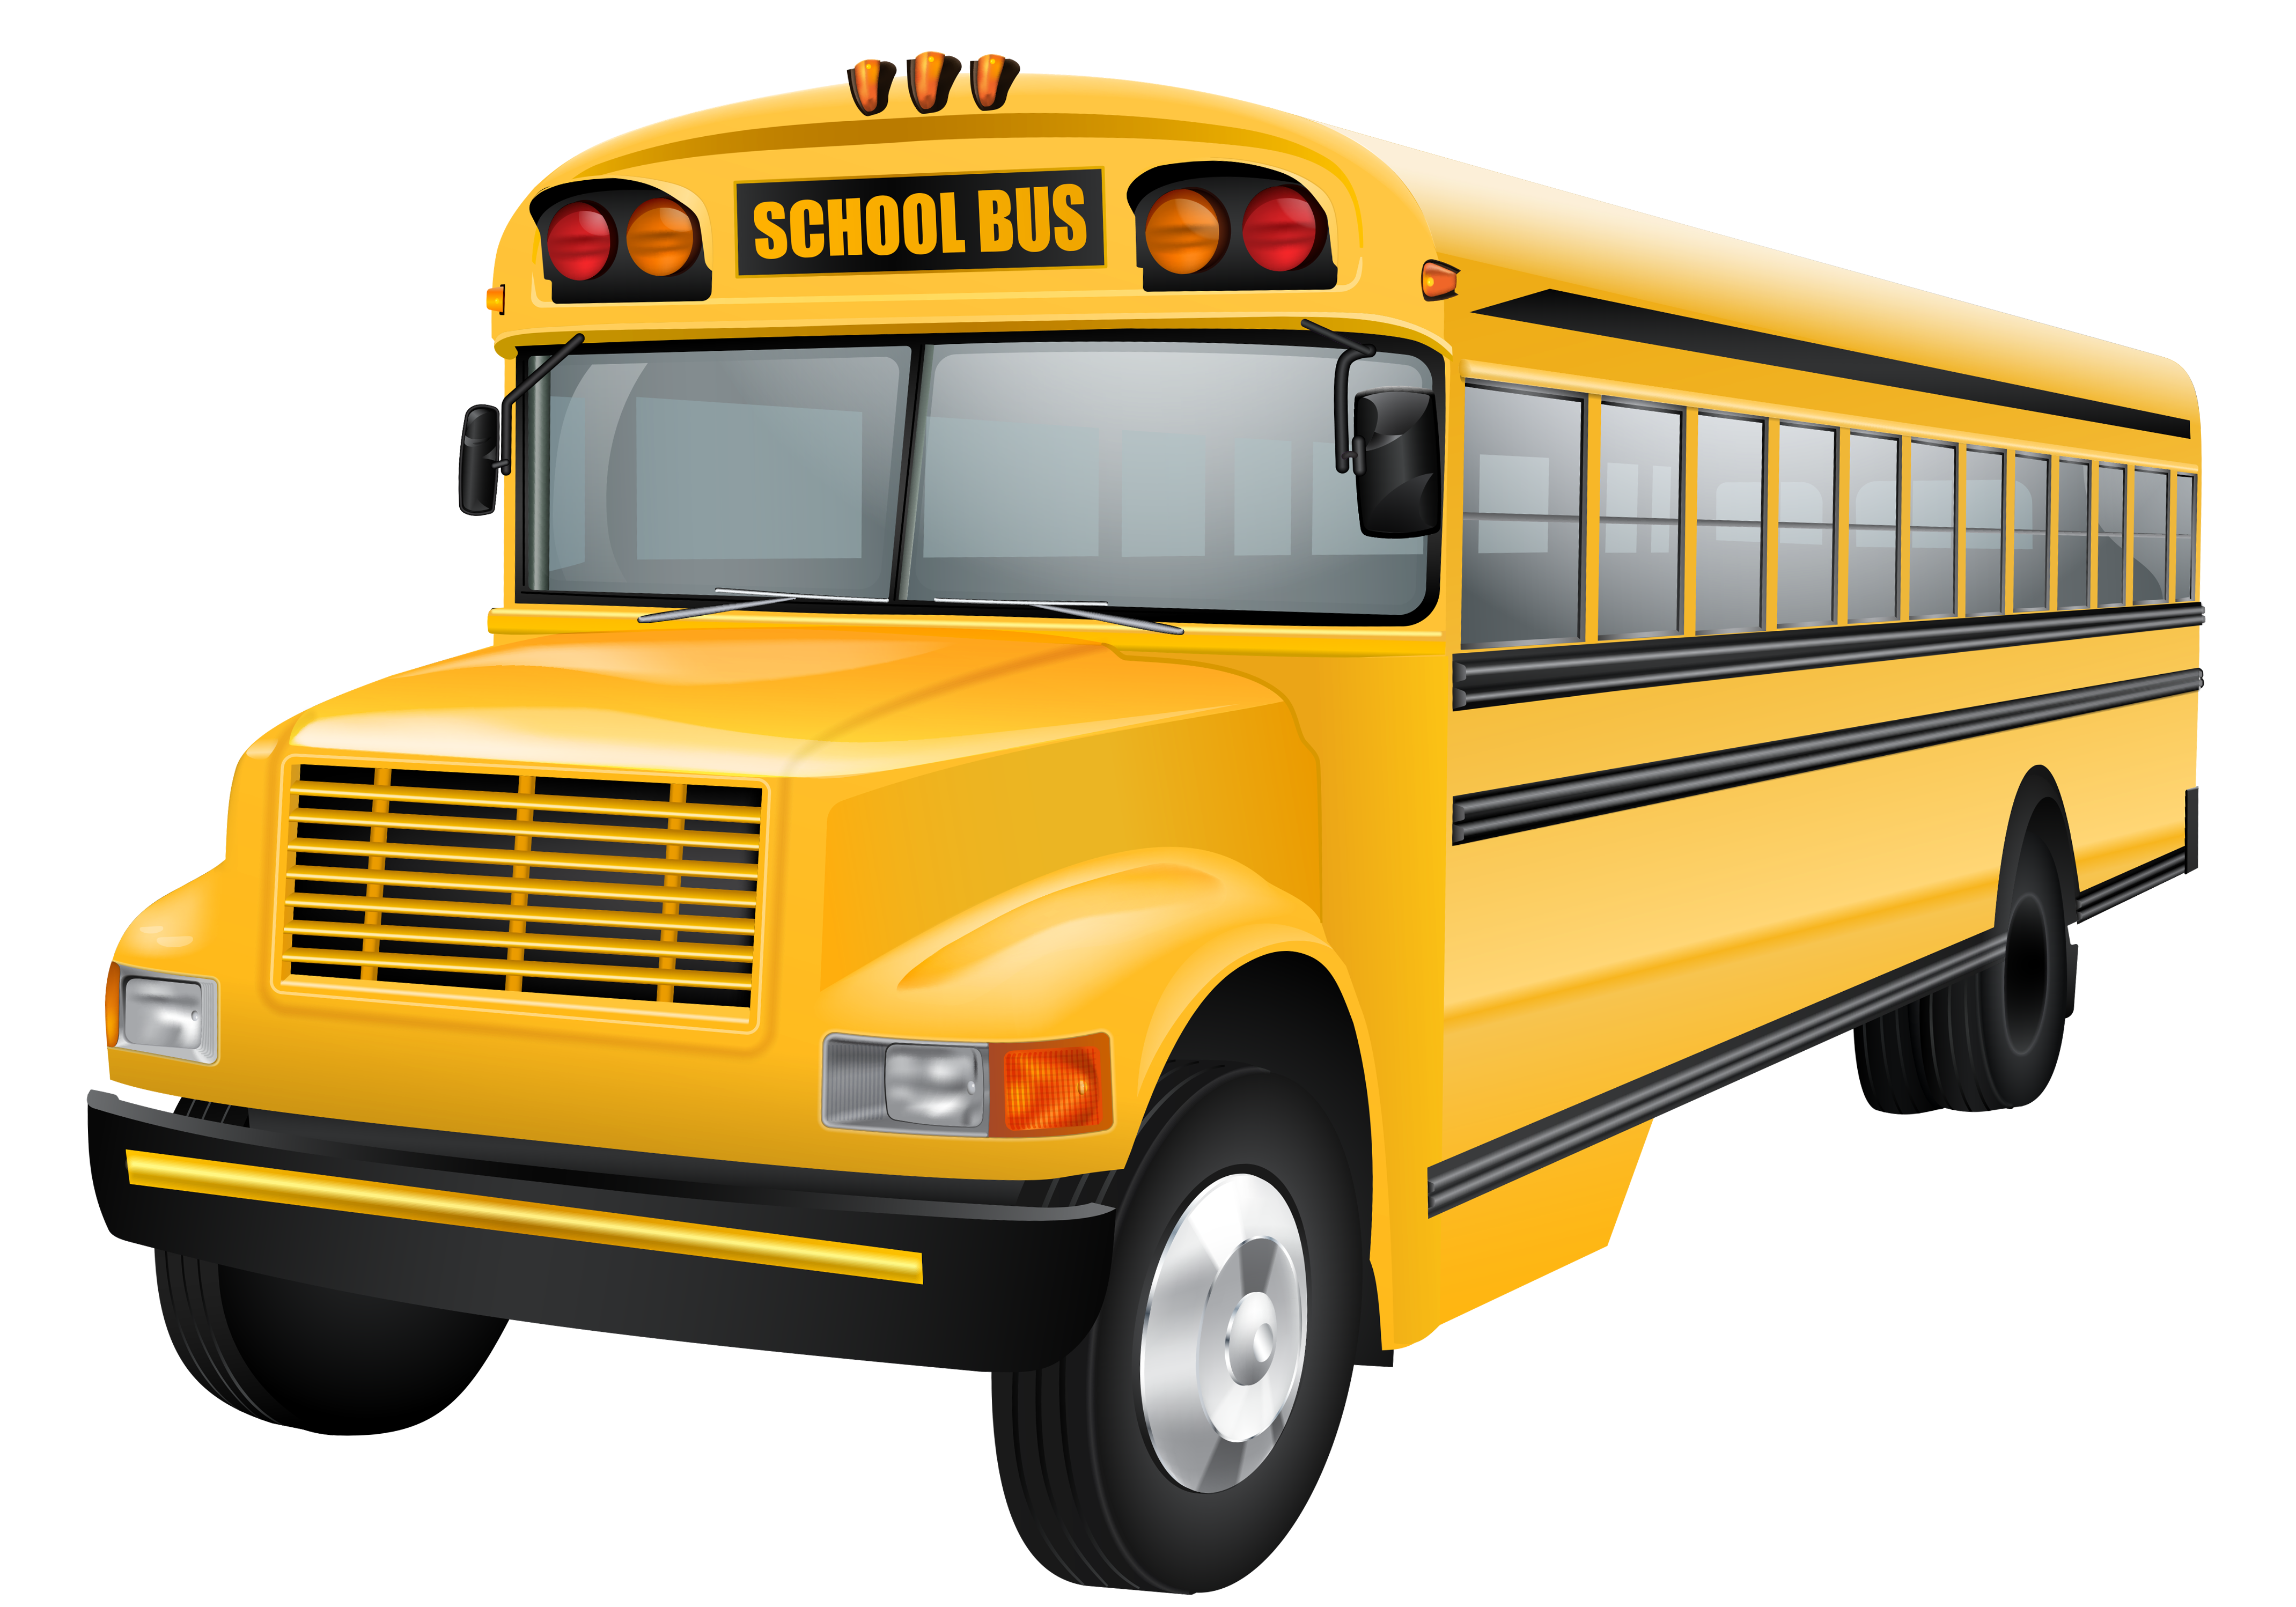 School bus clip art png. Clipart picture gallery yopriceville